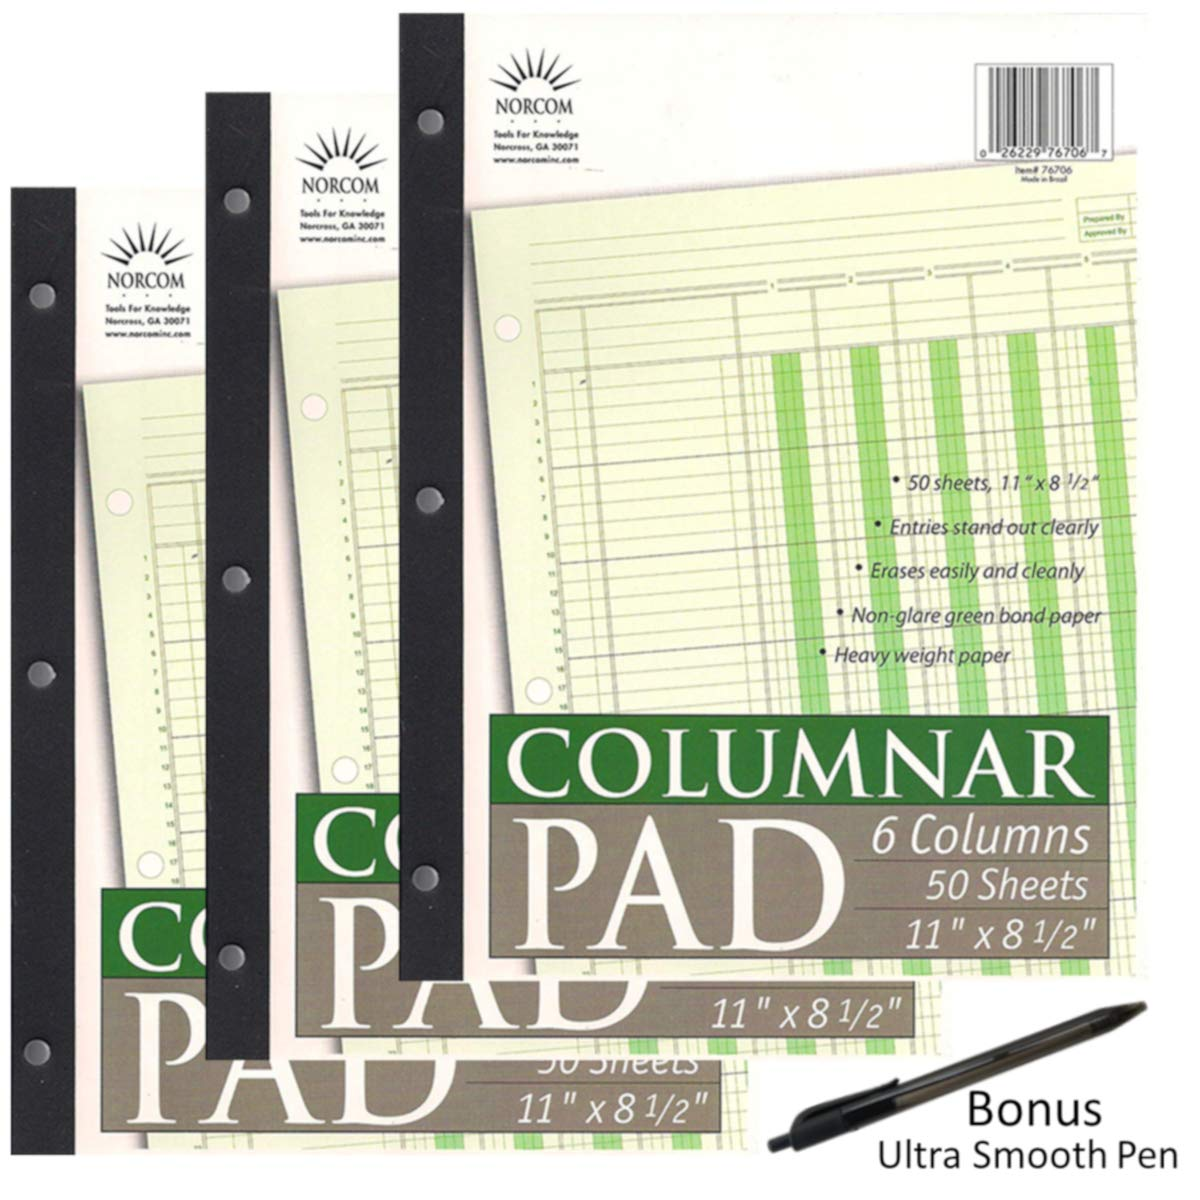 Norcom Columnar Pad, 6 Columns, Made in The USA, 11 x 8.5 Inches, 50 Sheets Per Pad (76706-10) Pack of 3 Plus 1 Ultra Smooth Pen by JustWritin''